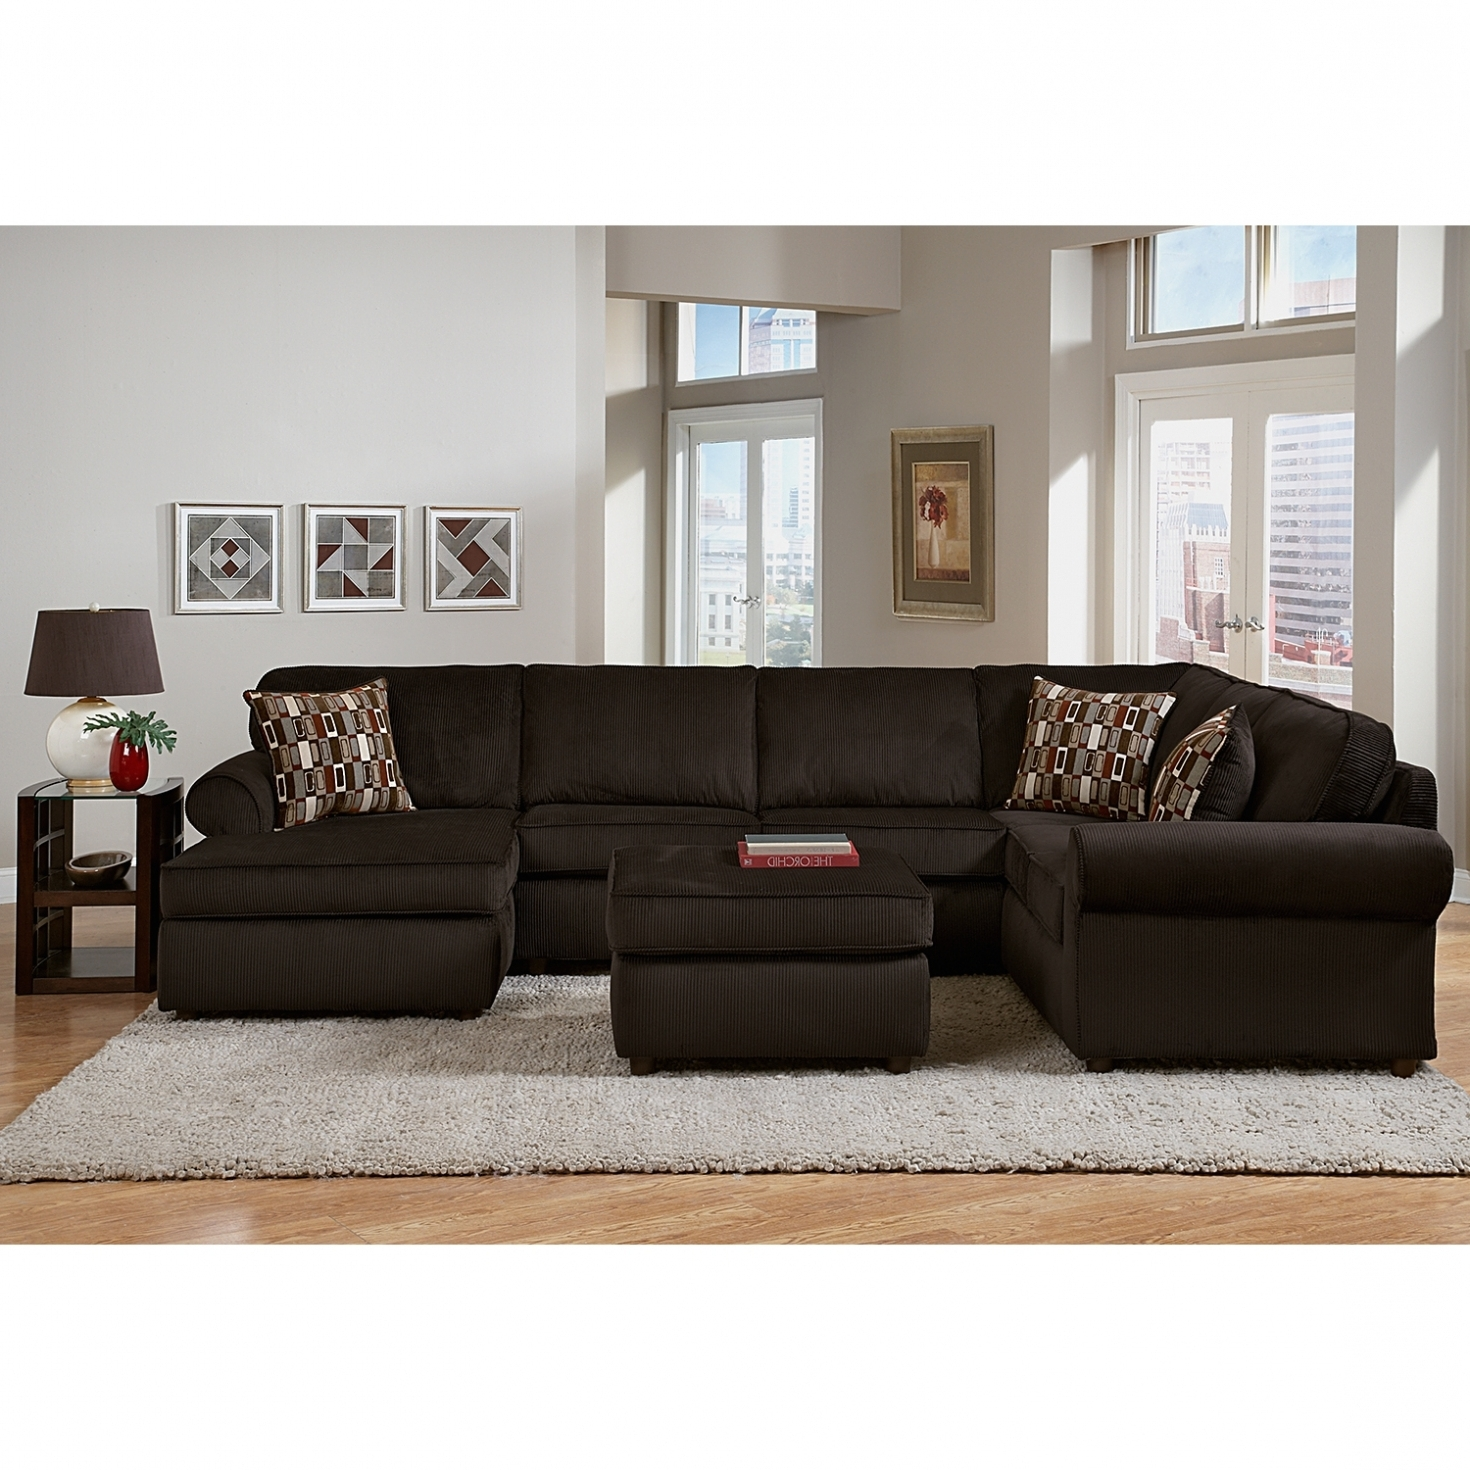 Furniture: New Value City Sectional Sofa 32 For Living Room Sofa with regard to Newest Value City Sectional Sofas